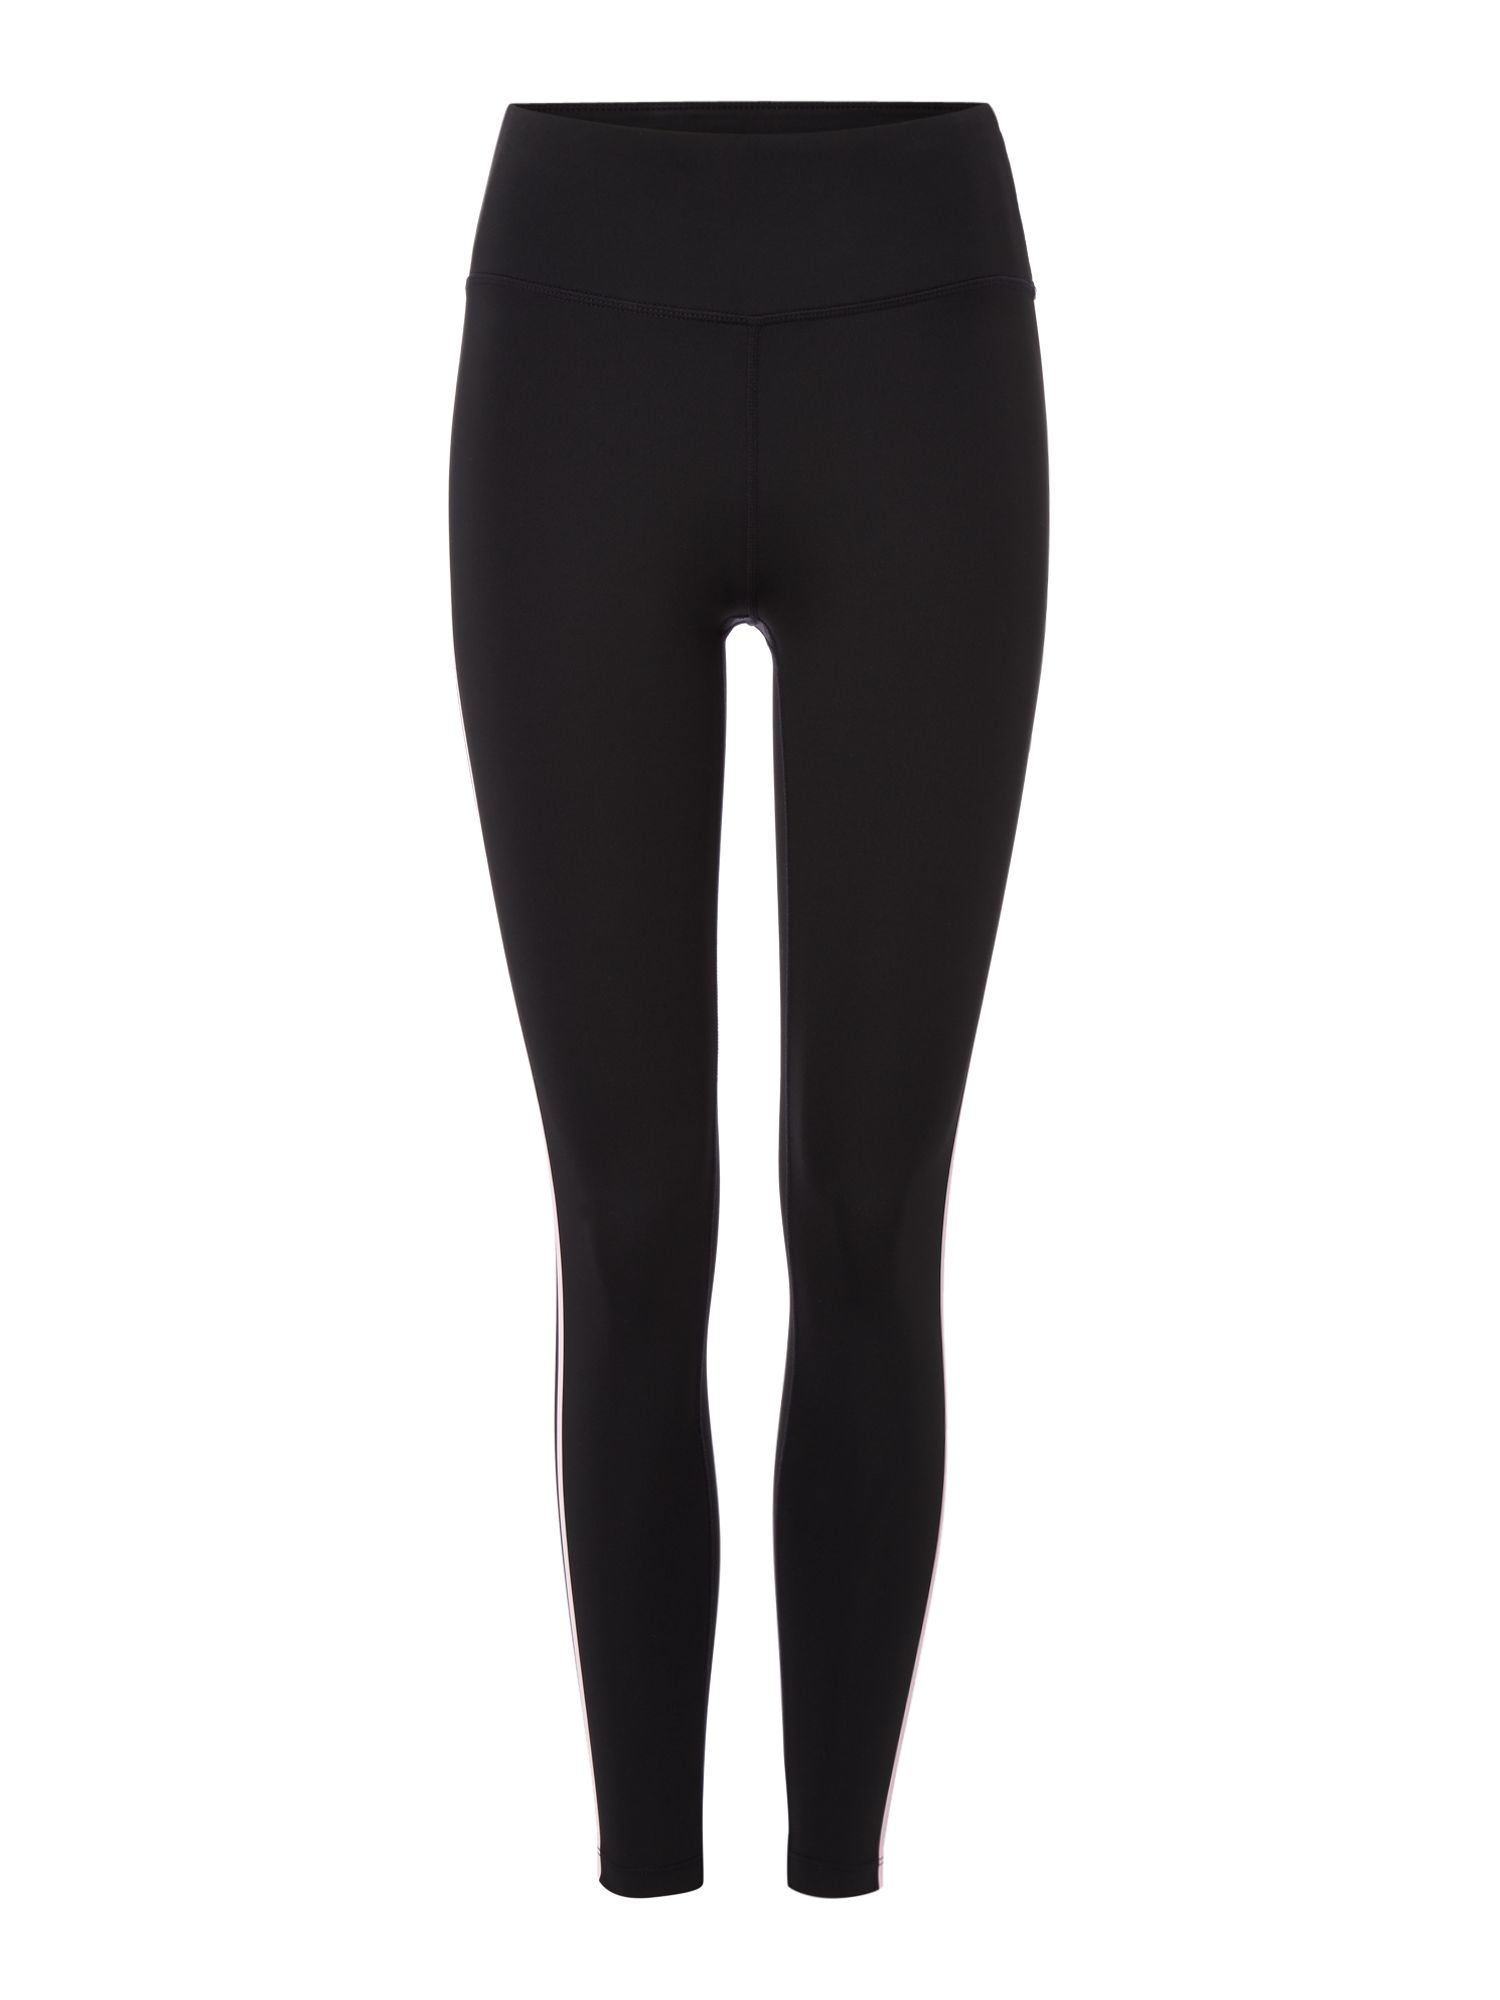 DKNY 78 LEGGING WITH REFLECTIVE TAPE AND BACK, Black